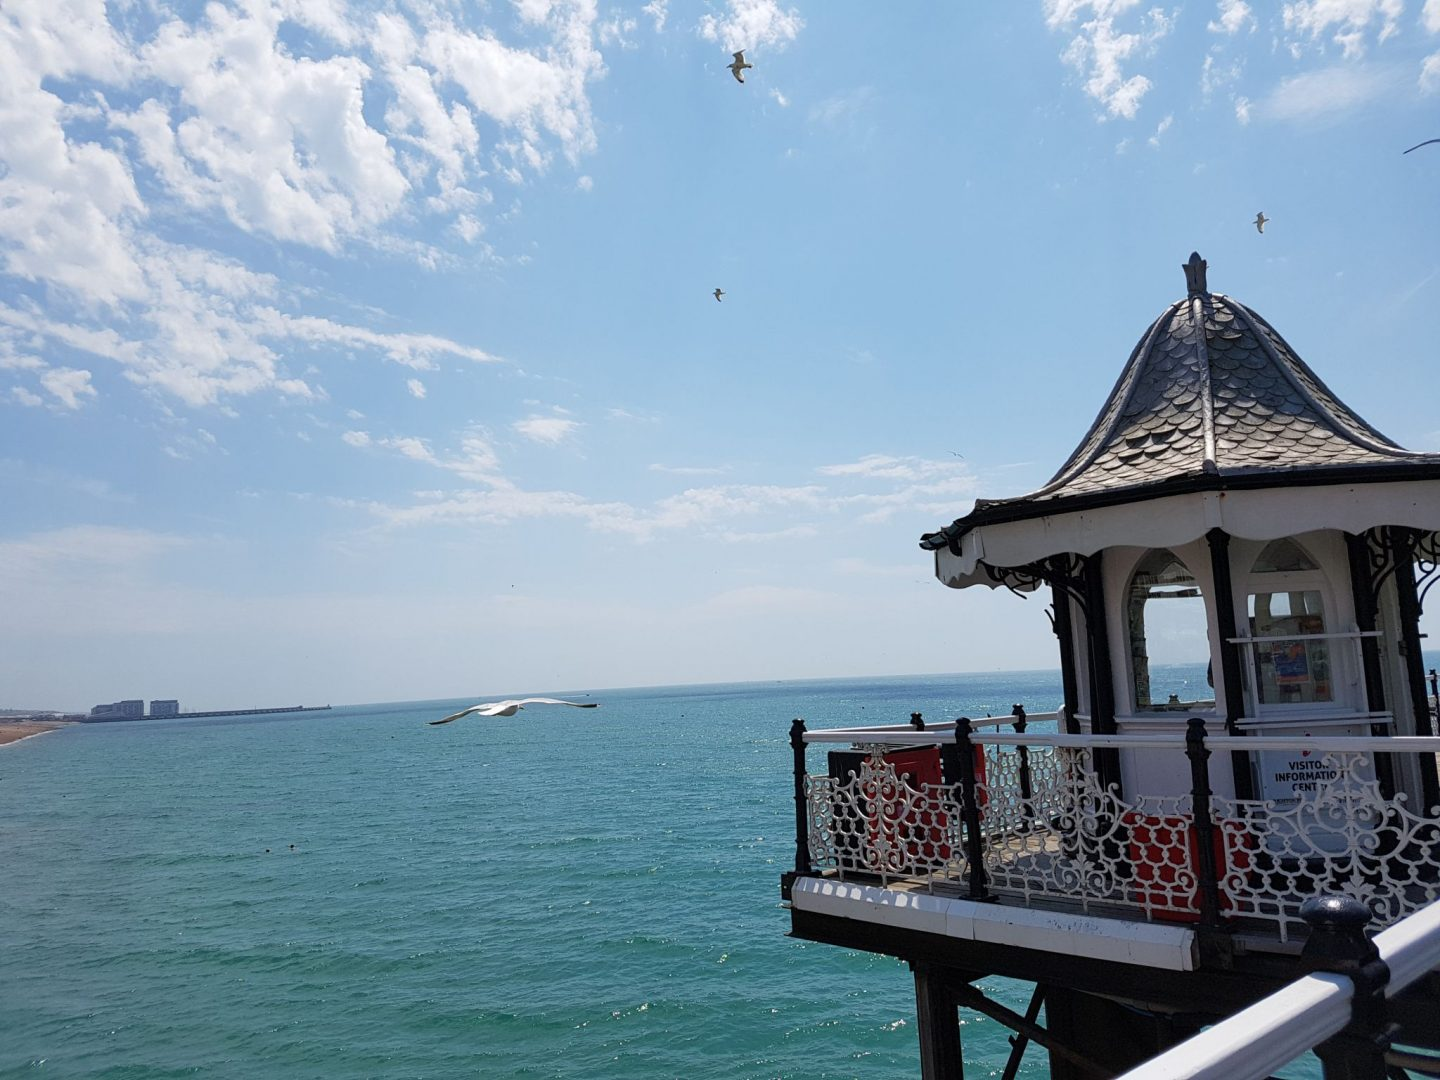 Day trip to Brighton - How to have the perfect day out - SANOOBAR ...